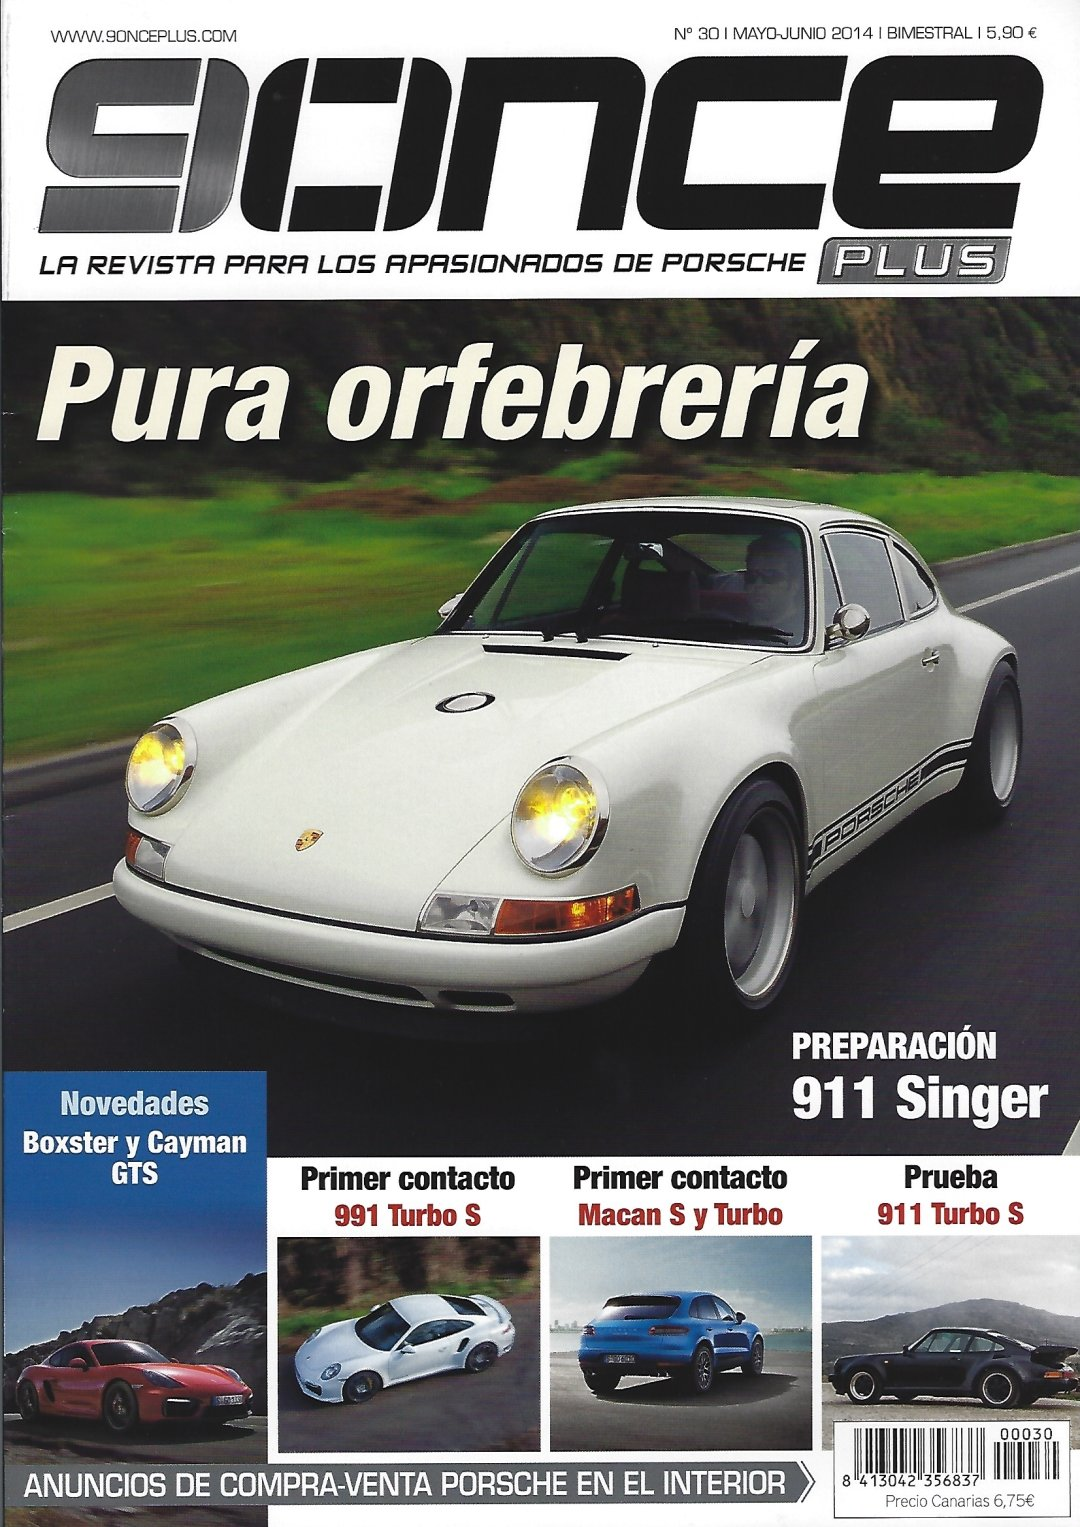 1989 Porsche 930 Turbo 'S' - G50 5 Speed - One of 55  For Sale (picture 6 of 6)